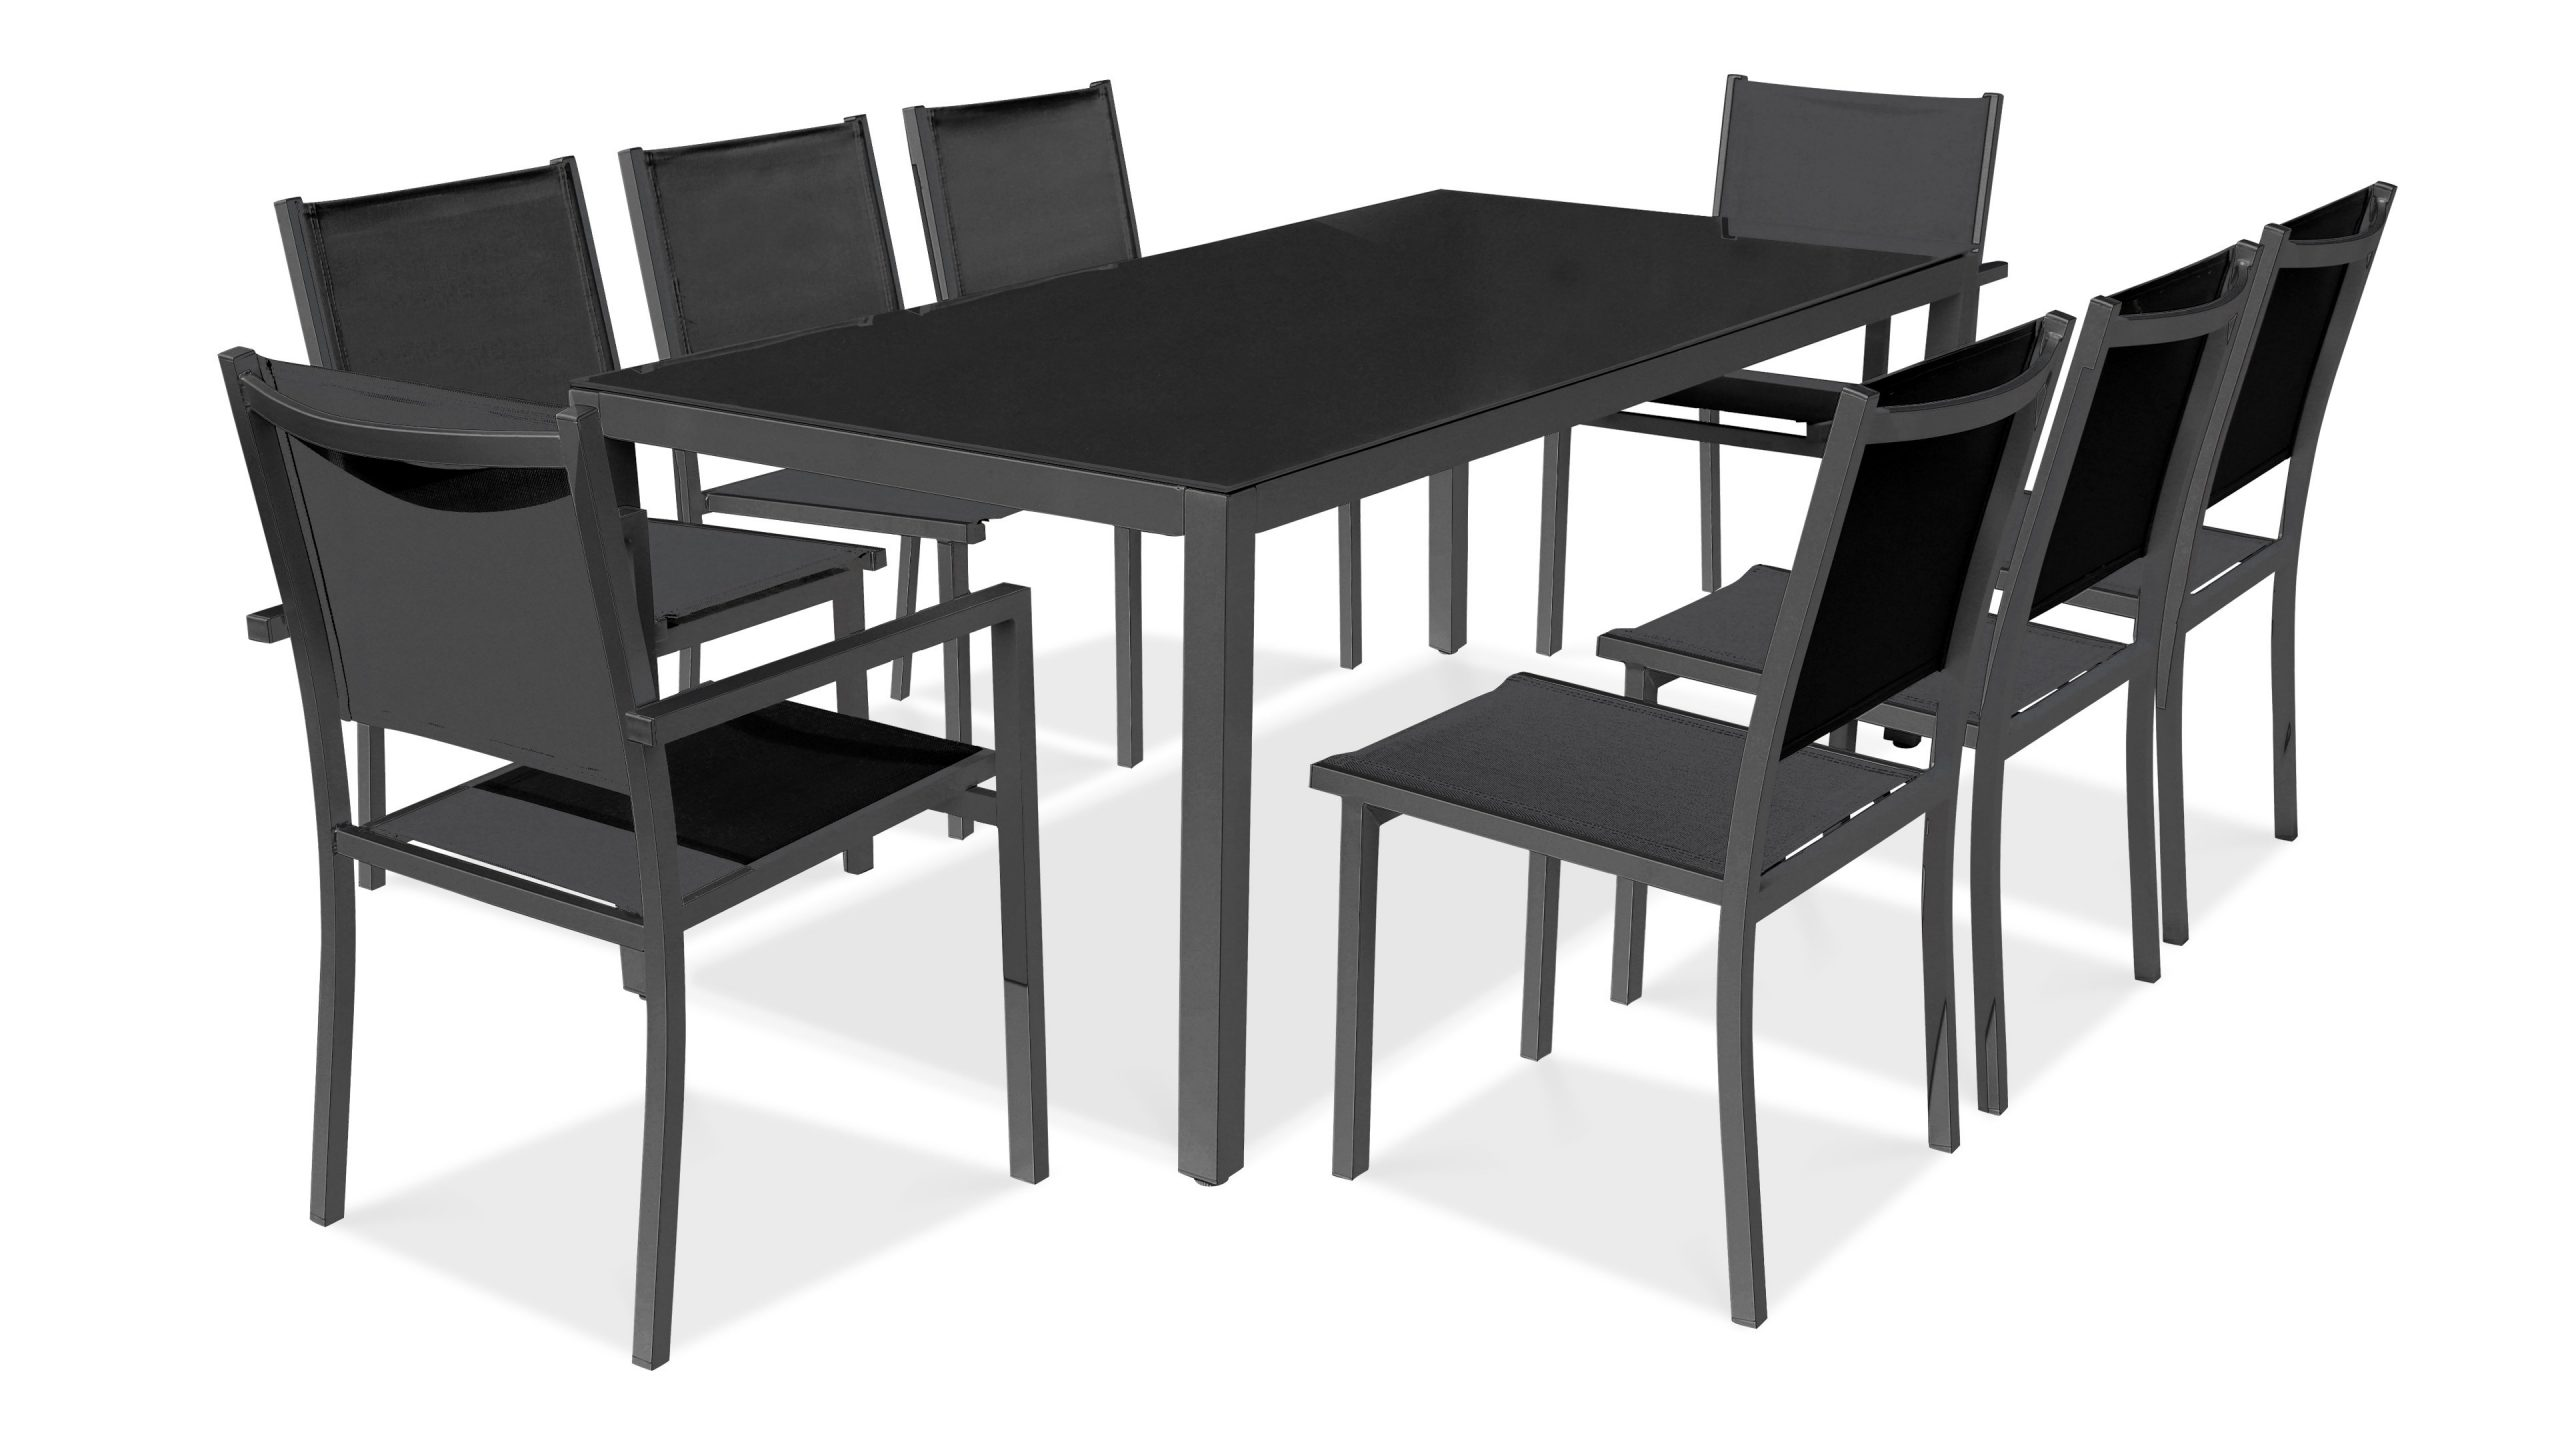 Salon De Jardin Aluminium Table De Jardin 8 Places encequiconcerne Table De Jardin Design Pas Cher